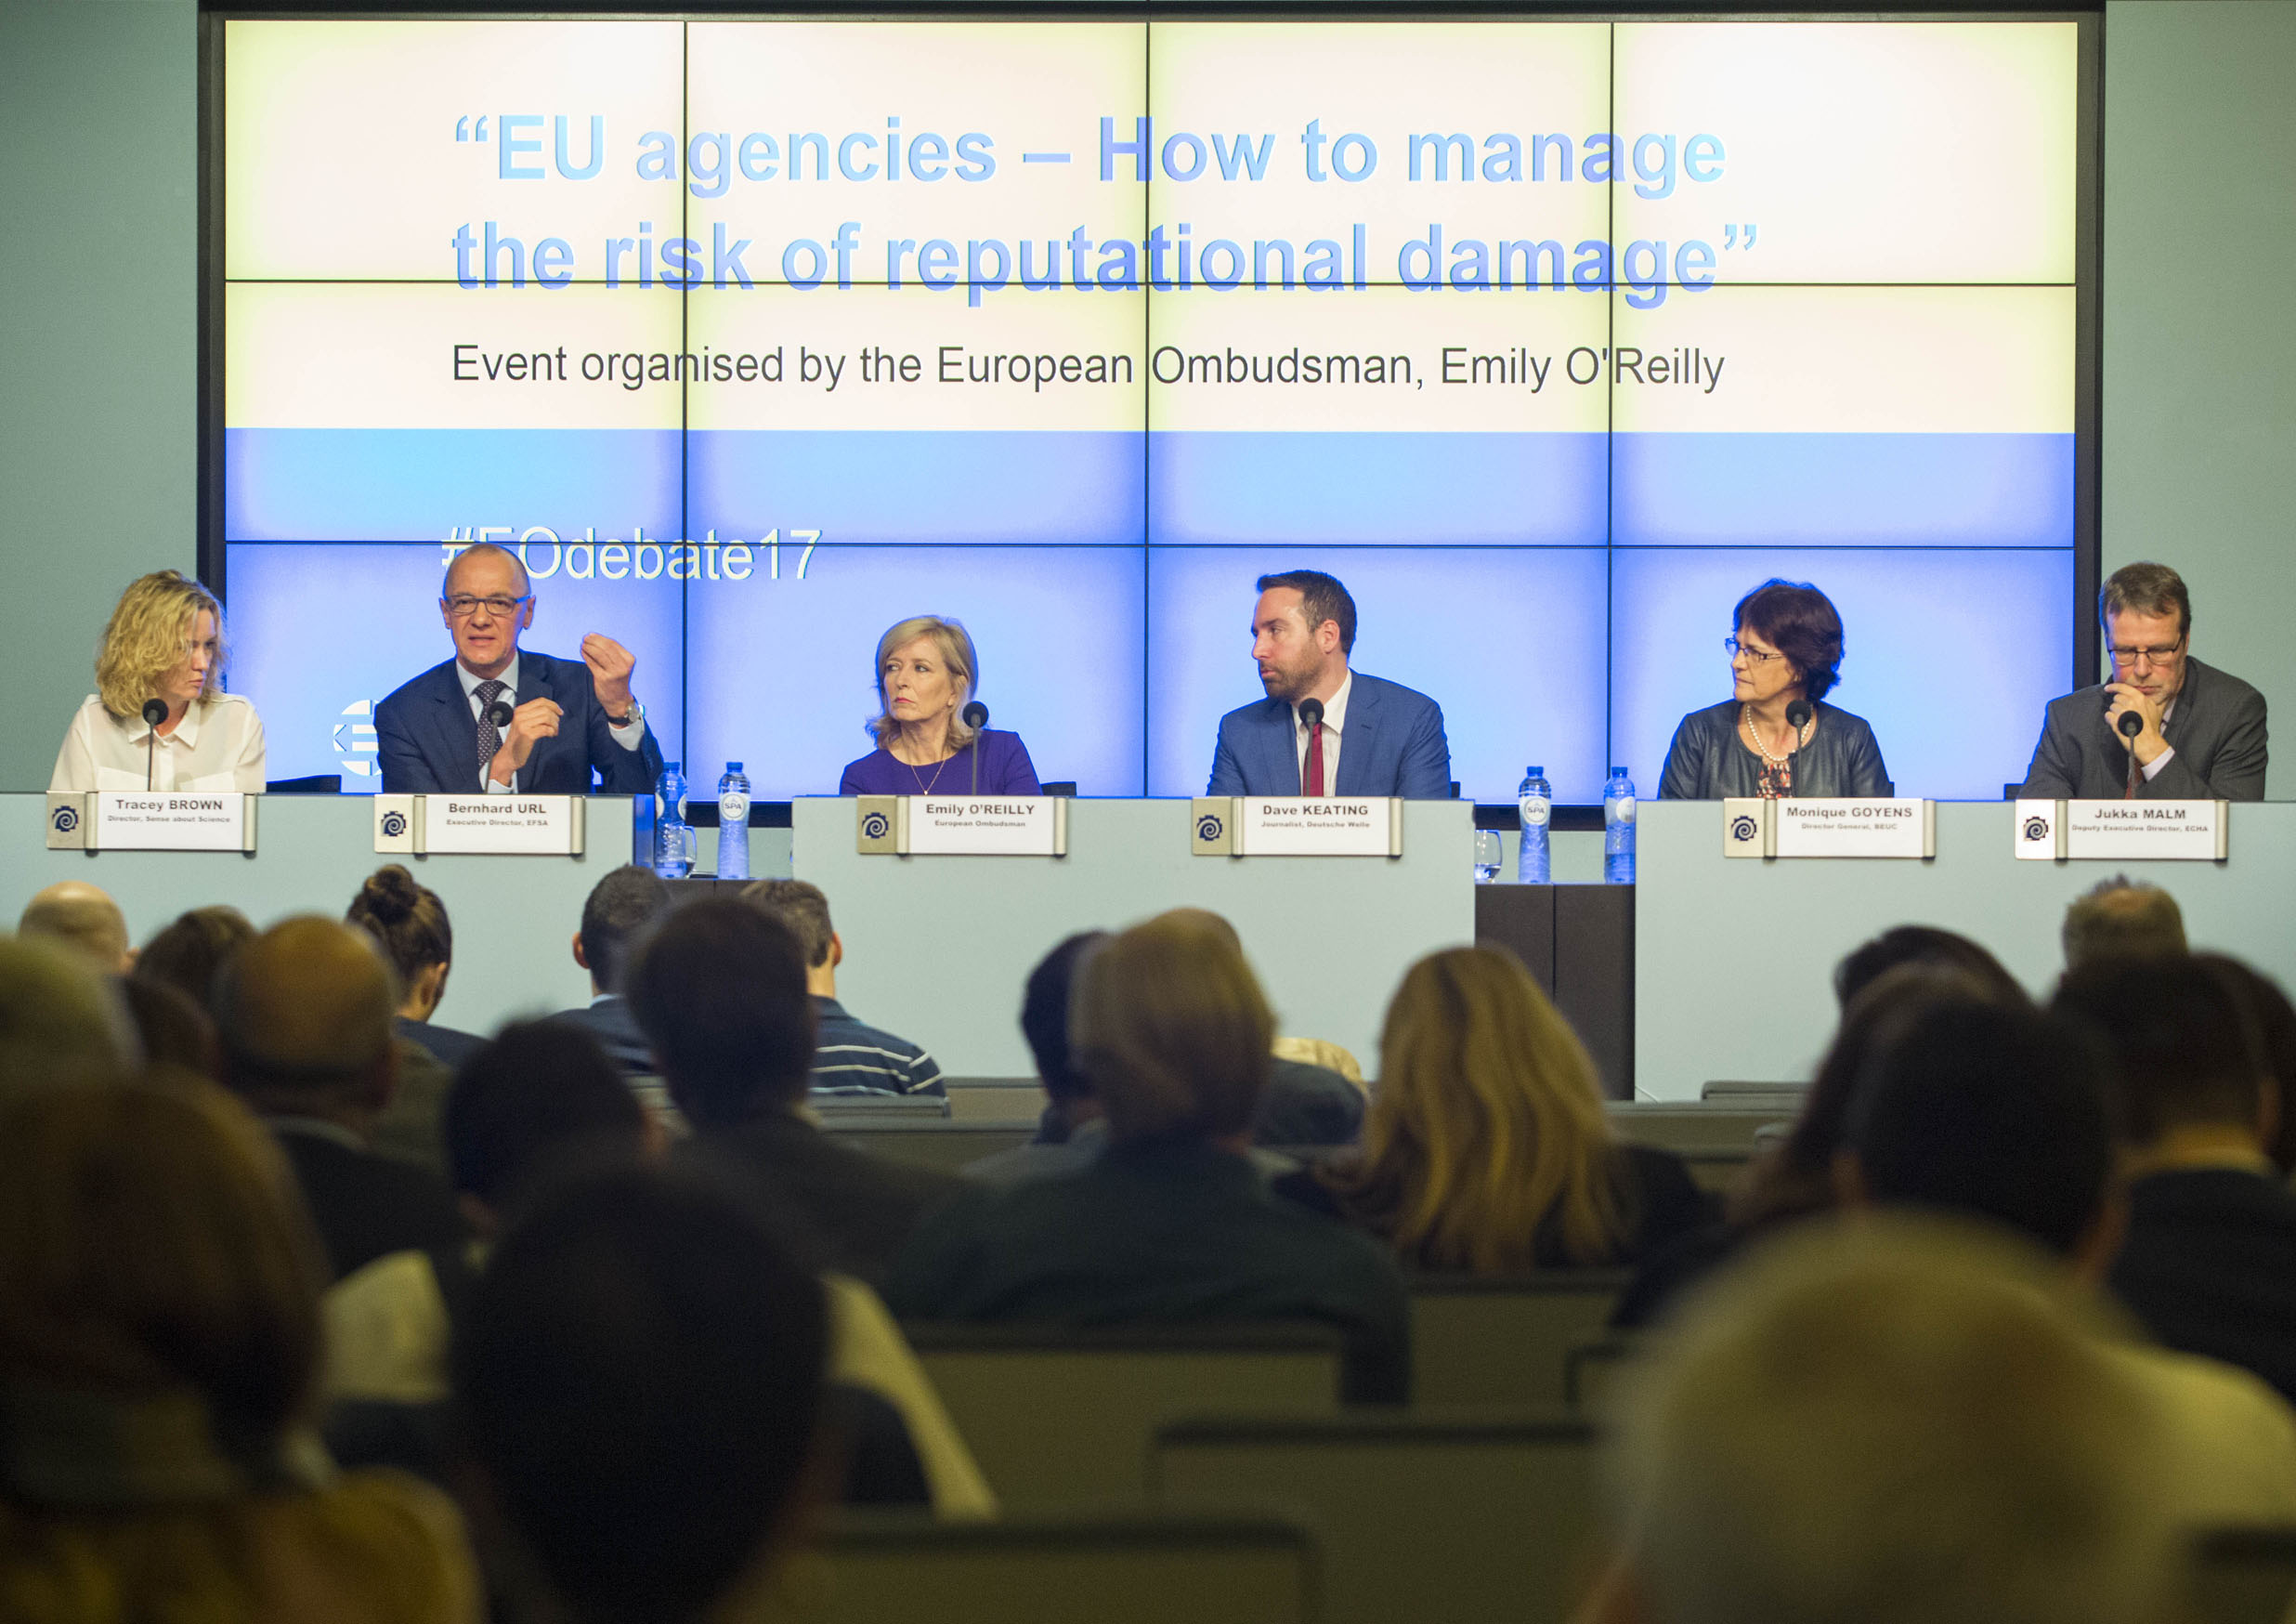 "The European Ombudsman's public event entitled ""EU agencies: How to manage the risk of reputational damage"" in October with panellists (from left to right): Tracey Brown, Director of Sense about Science; Bernhard Url, Executive Director of EFSA; Emily O'Reilly, the European Ombudsman; event moderator, Dave Keating; Monique Goyens, Director-General of the BEUC; and Jukka Malm, Deputy Executive Director of the ECHA."